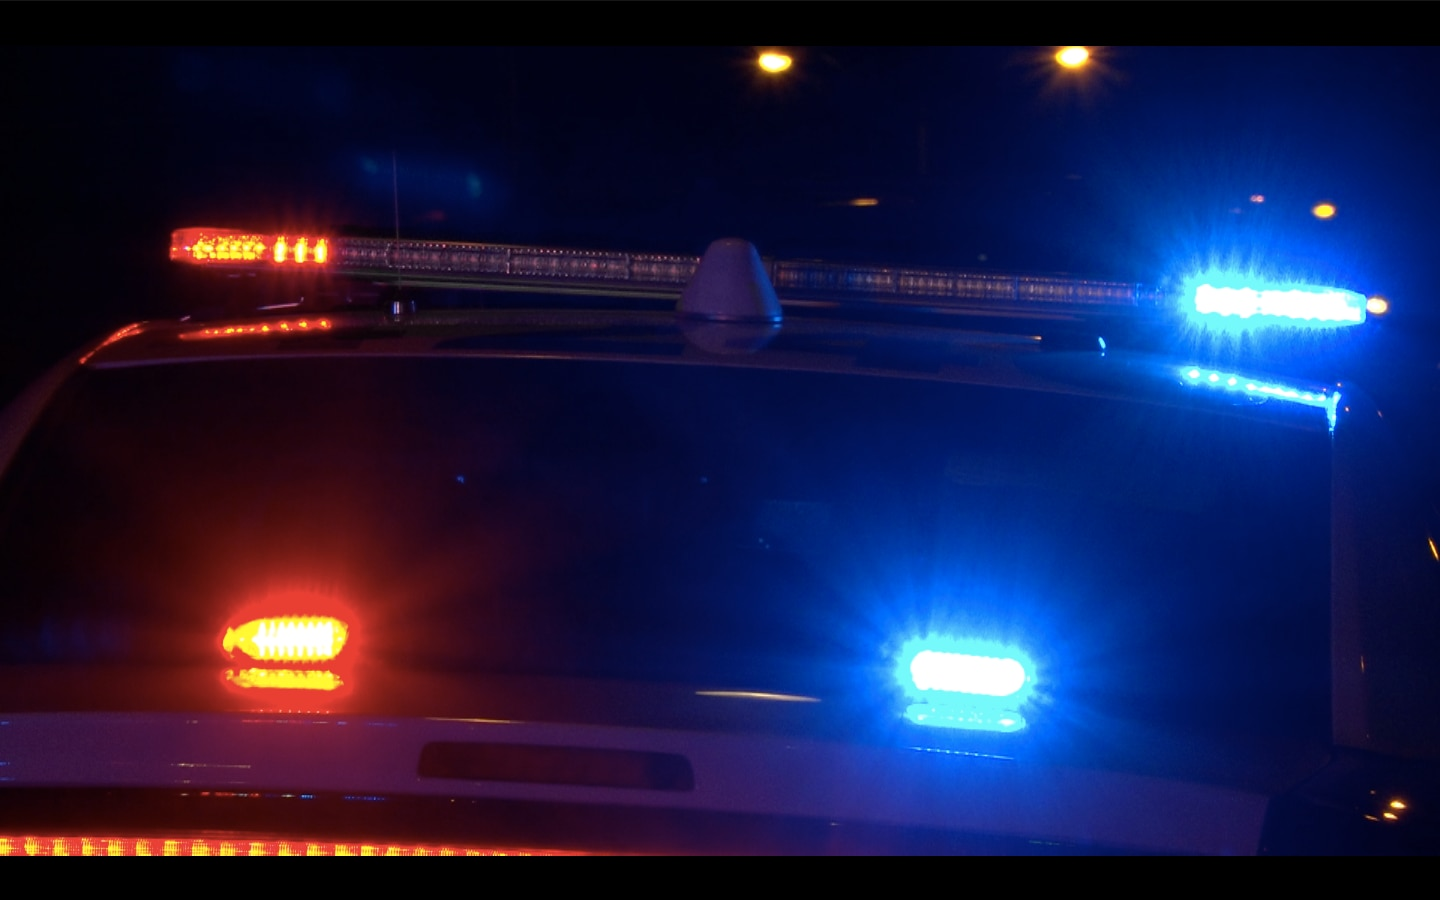 The woman was struck in the head by a bullet while she slept in her bed shortly before 2 a.m. in the 2600 block of Franklin Drive, near Butterfield Drive, police said.